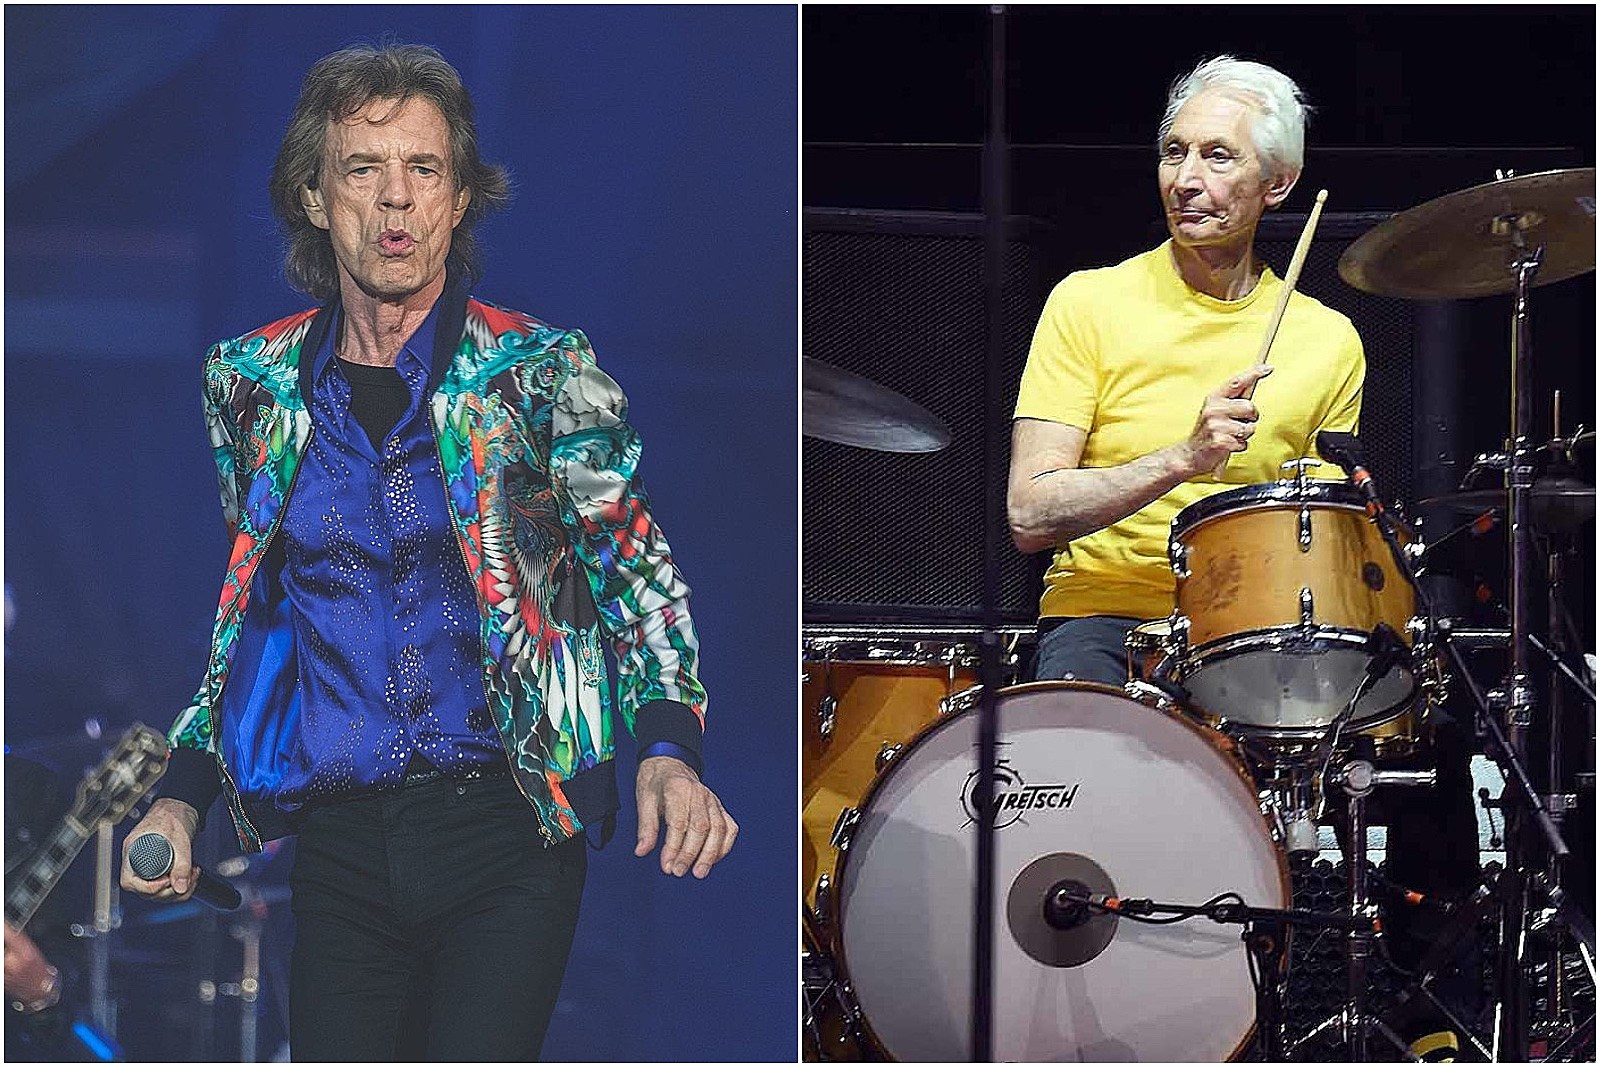 Mick Jagger Calls Late Charlie Watts Rolling Stones' 'Heartbeat'